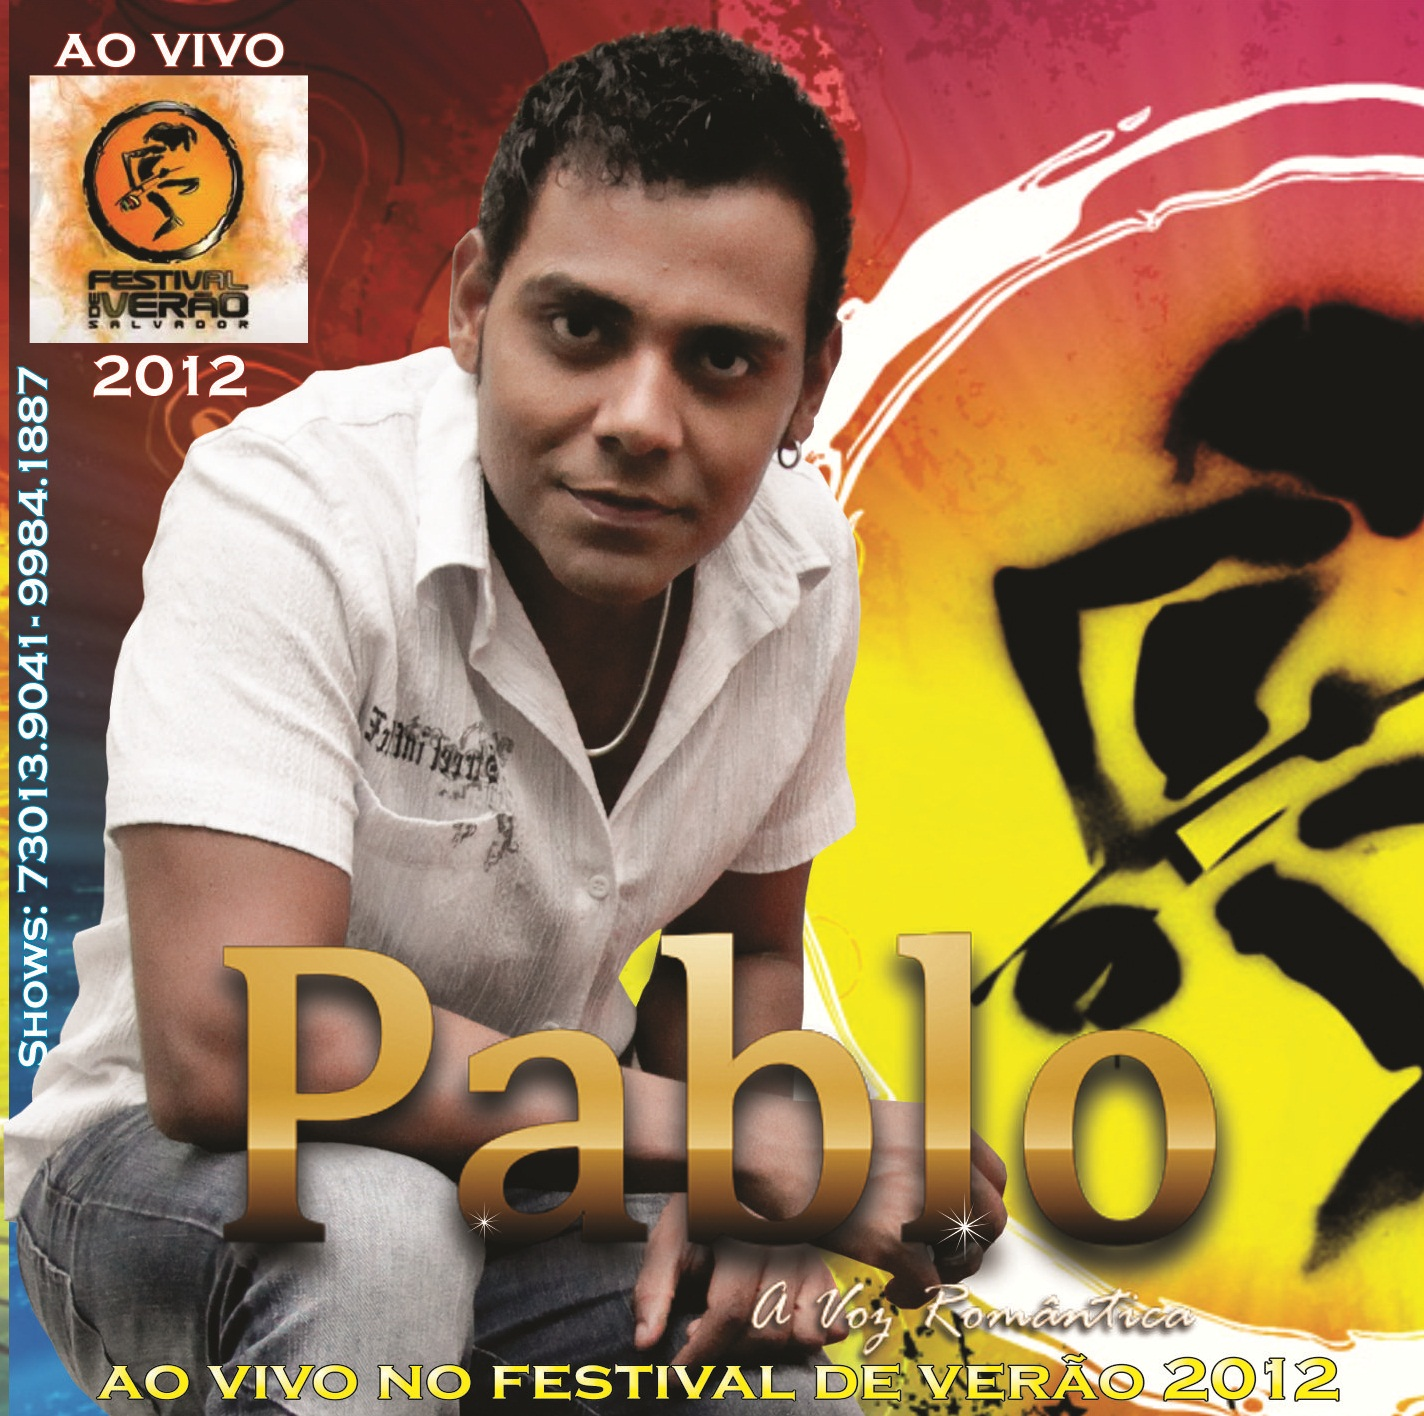 o cd de pablo do arrocha 2012 gratis